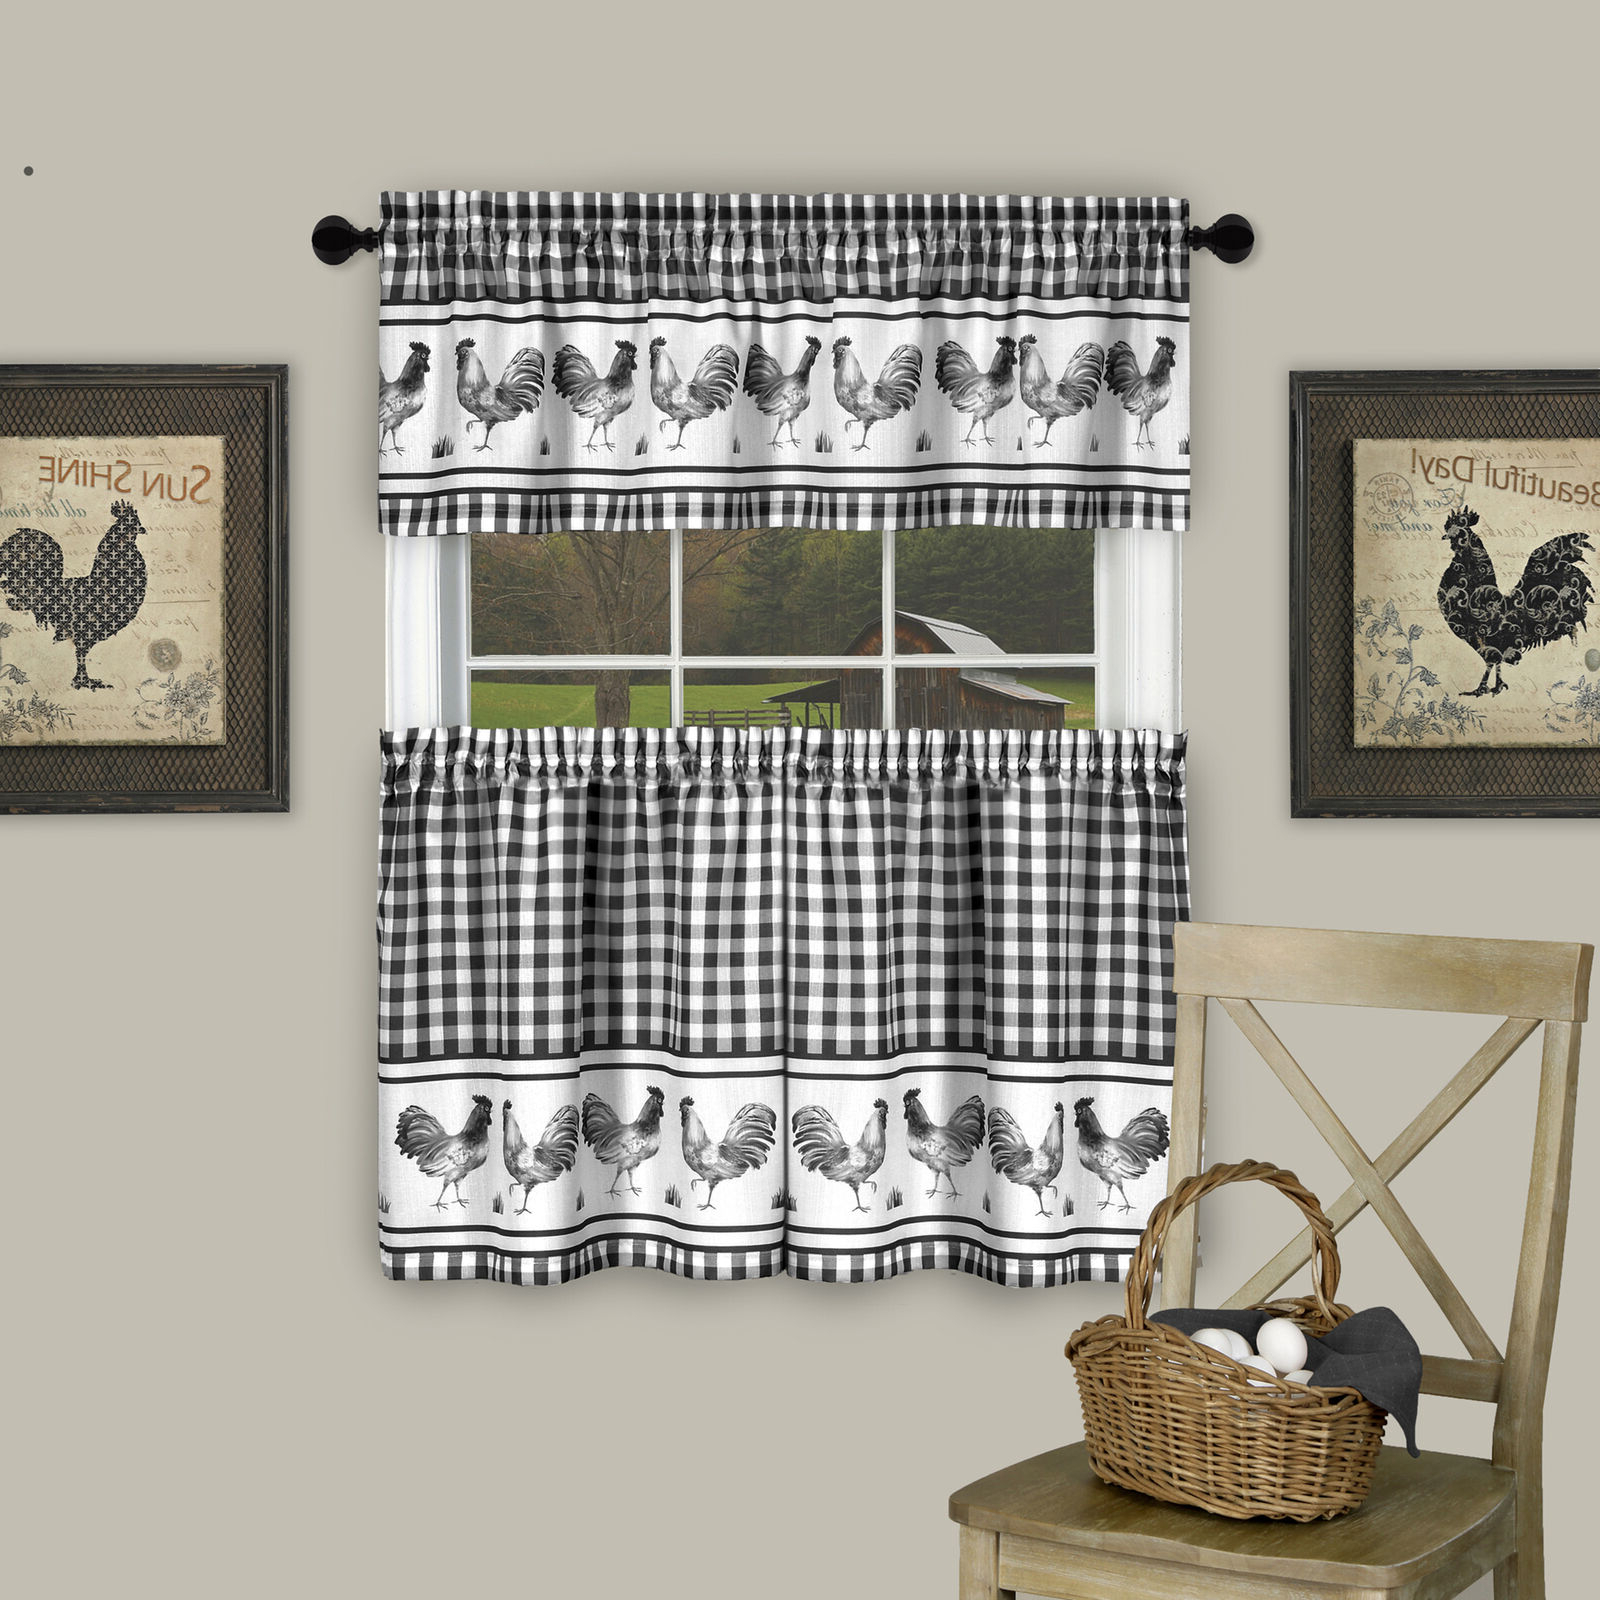 Lemon Drop Tier And Valance Window Curtain Sets Regarding Latest 3Pc Kitchen Curtain Set, Check Gingham Plaid Rooster, Tier Panels And Valance (View 6 of 20)